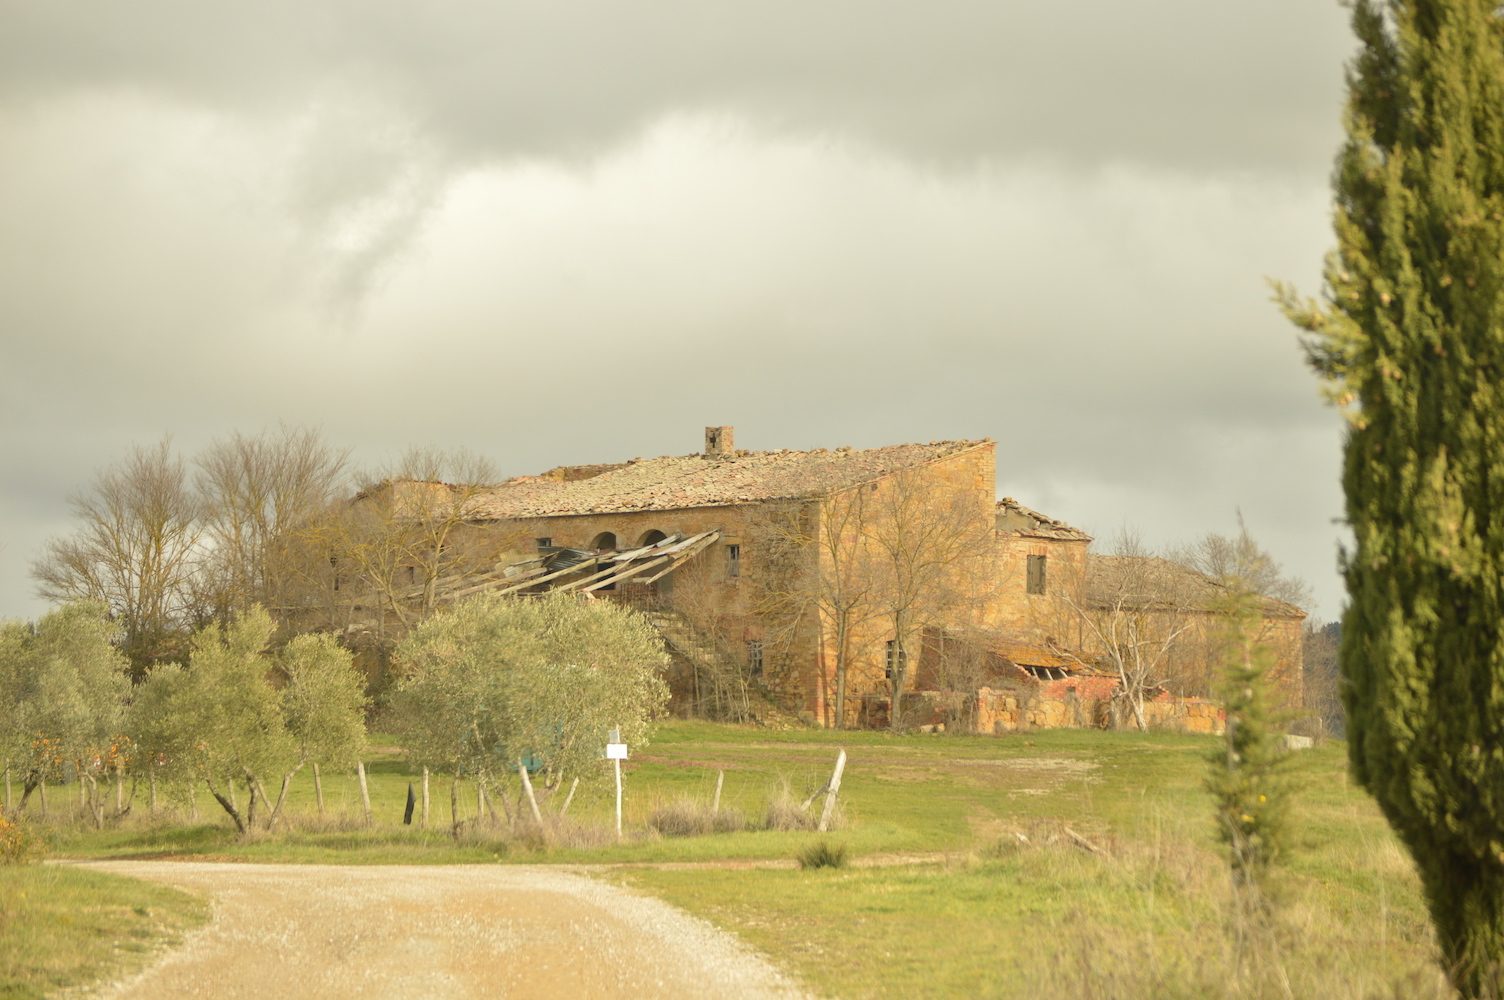 Tuscan-villa-in-disrepair